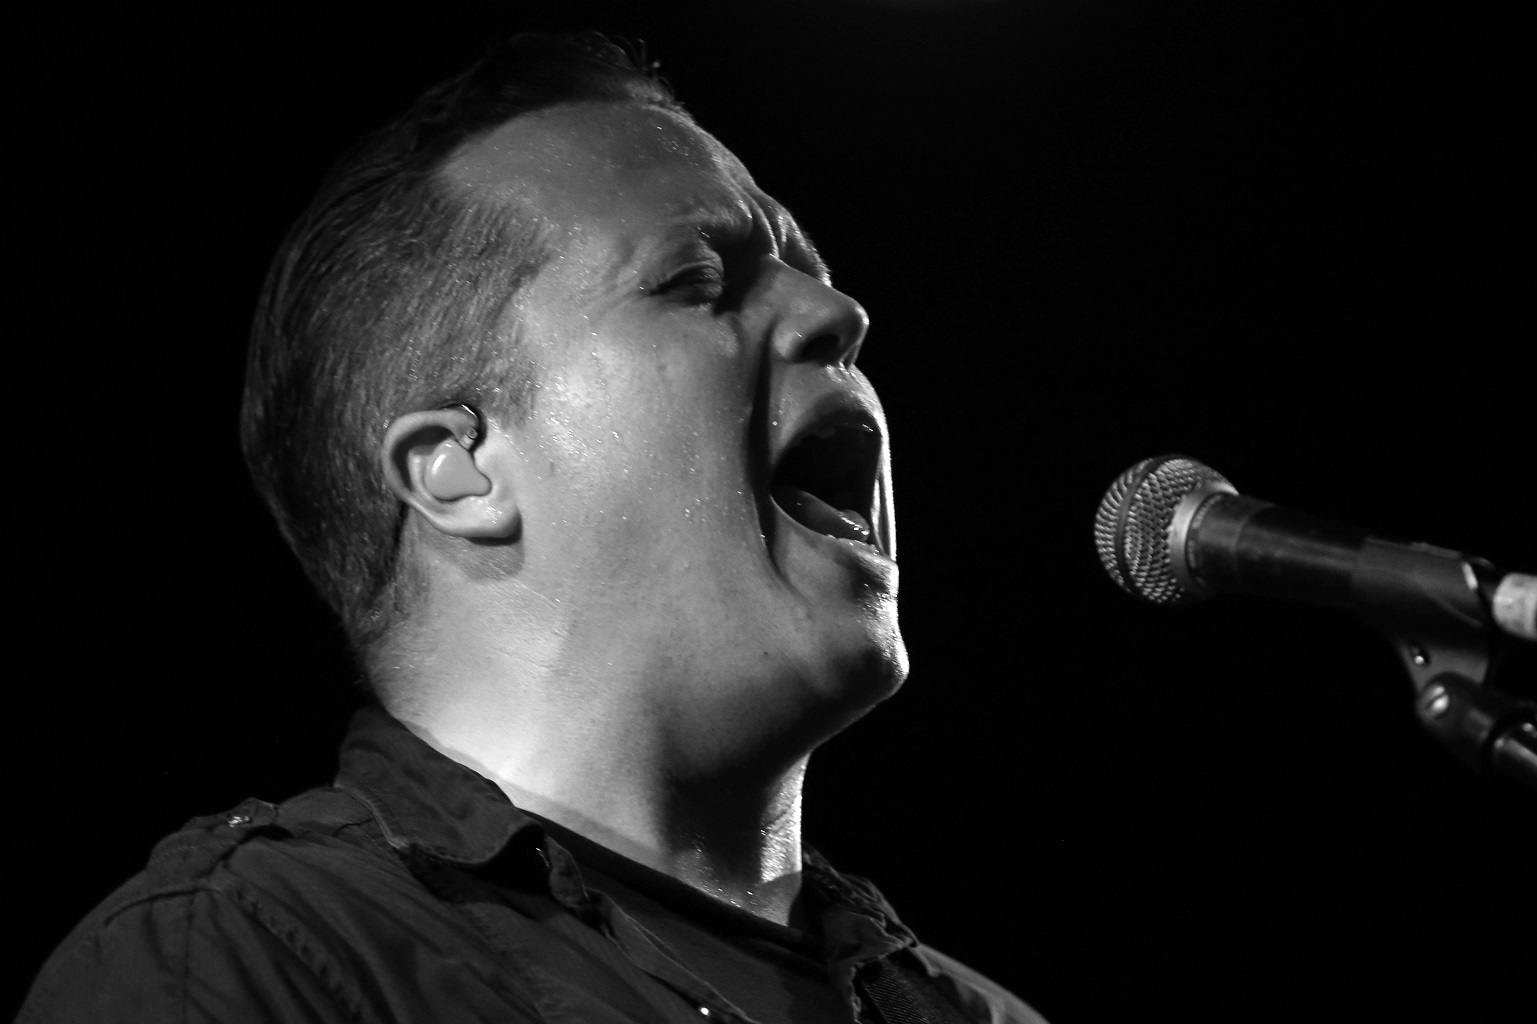 Jason Isbell & the 400 Club – Brudenell Social Club, Leeds, 21st May 2014